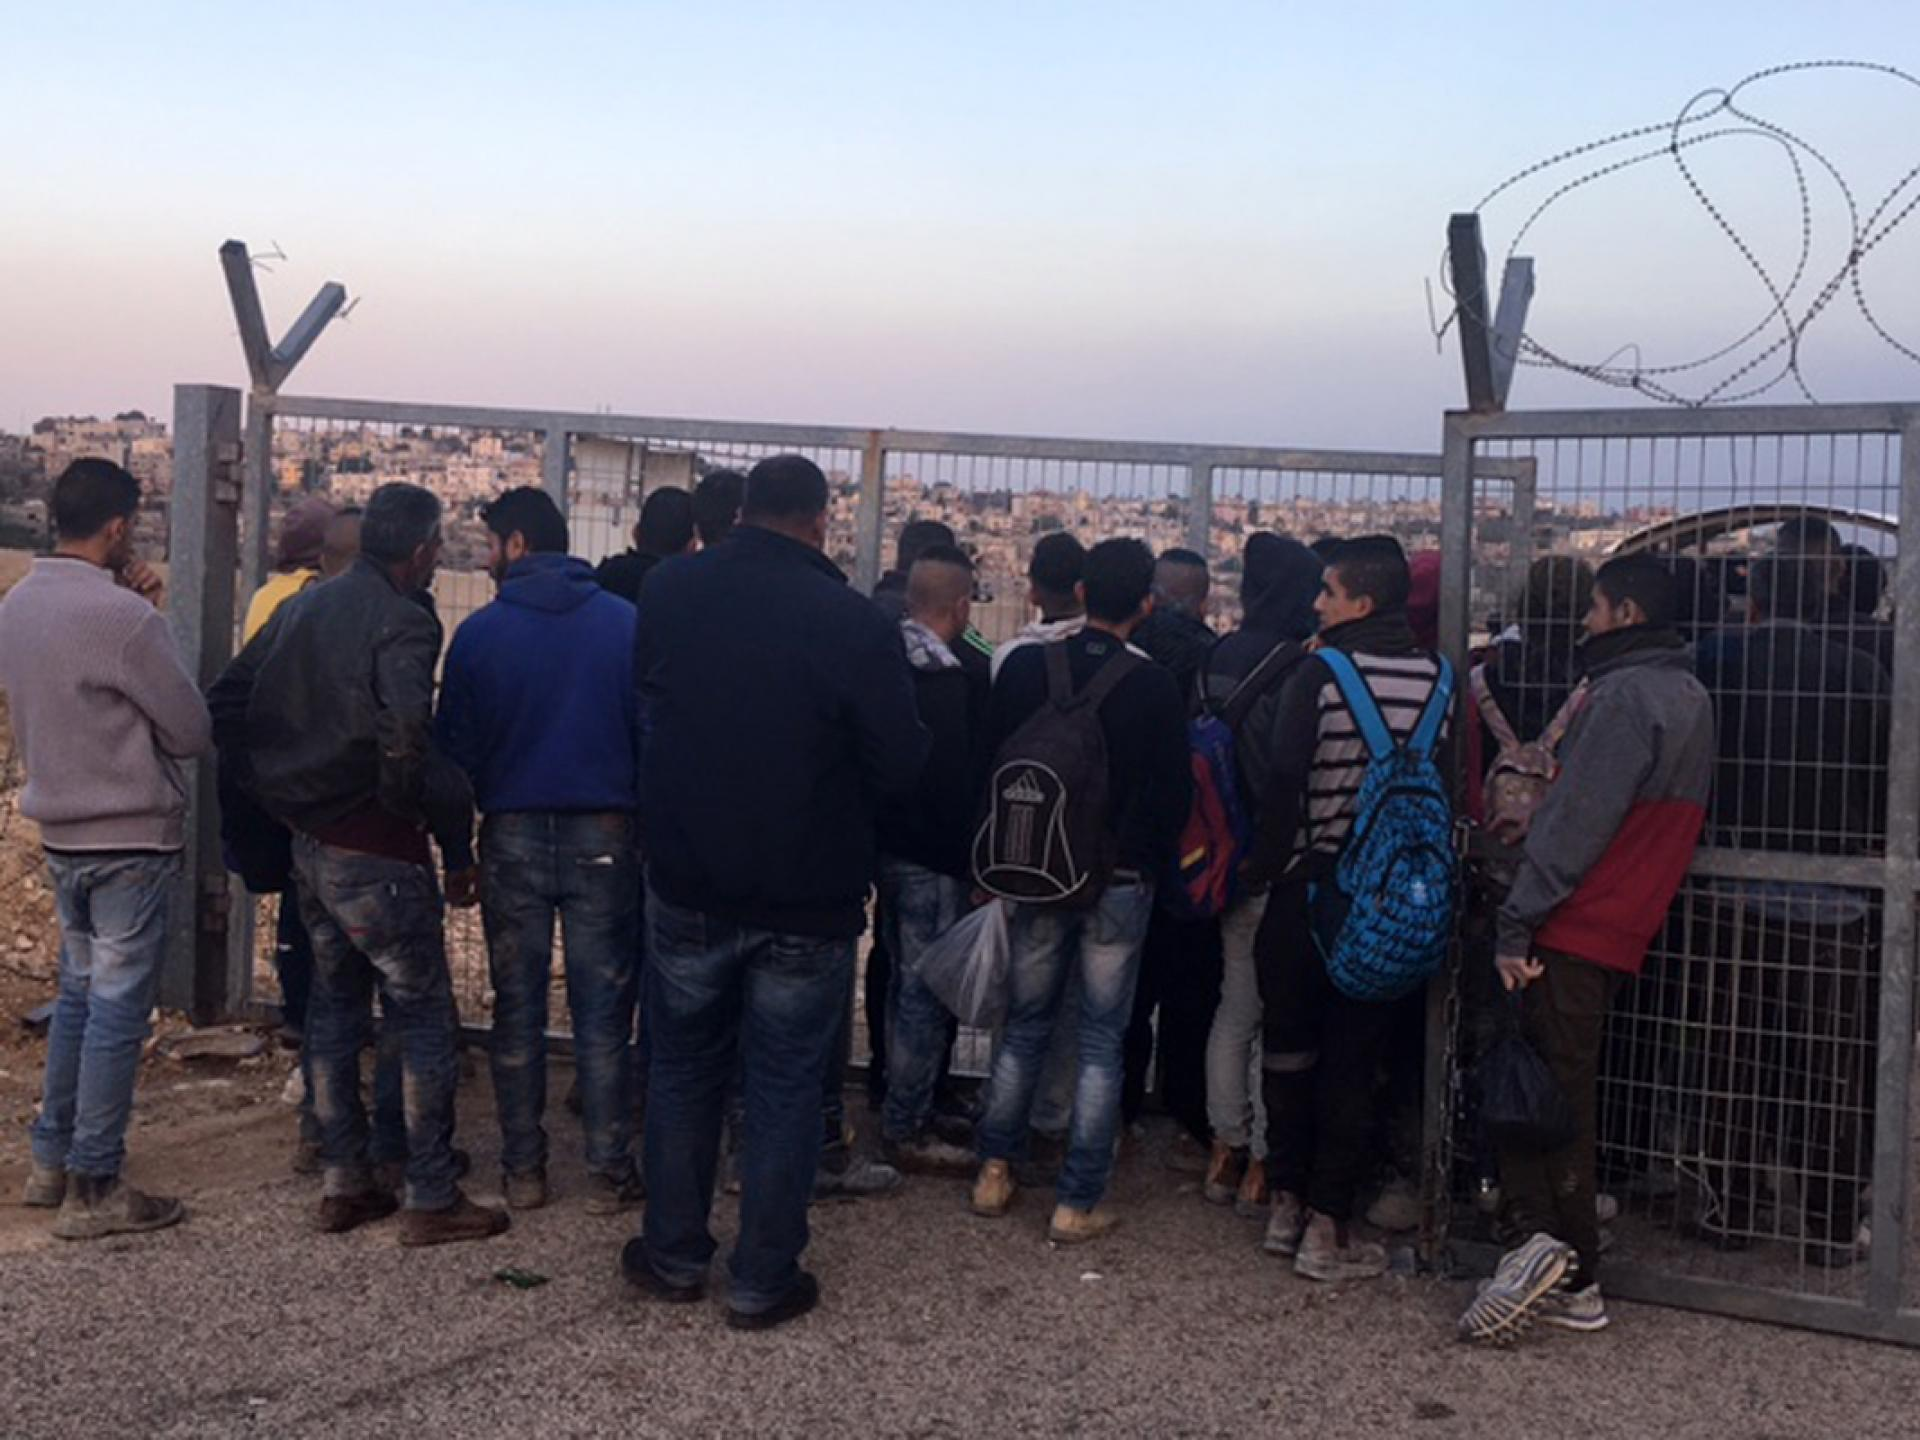 A'anin Checkpoint: People crowding at the gate on the way back to the village